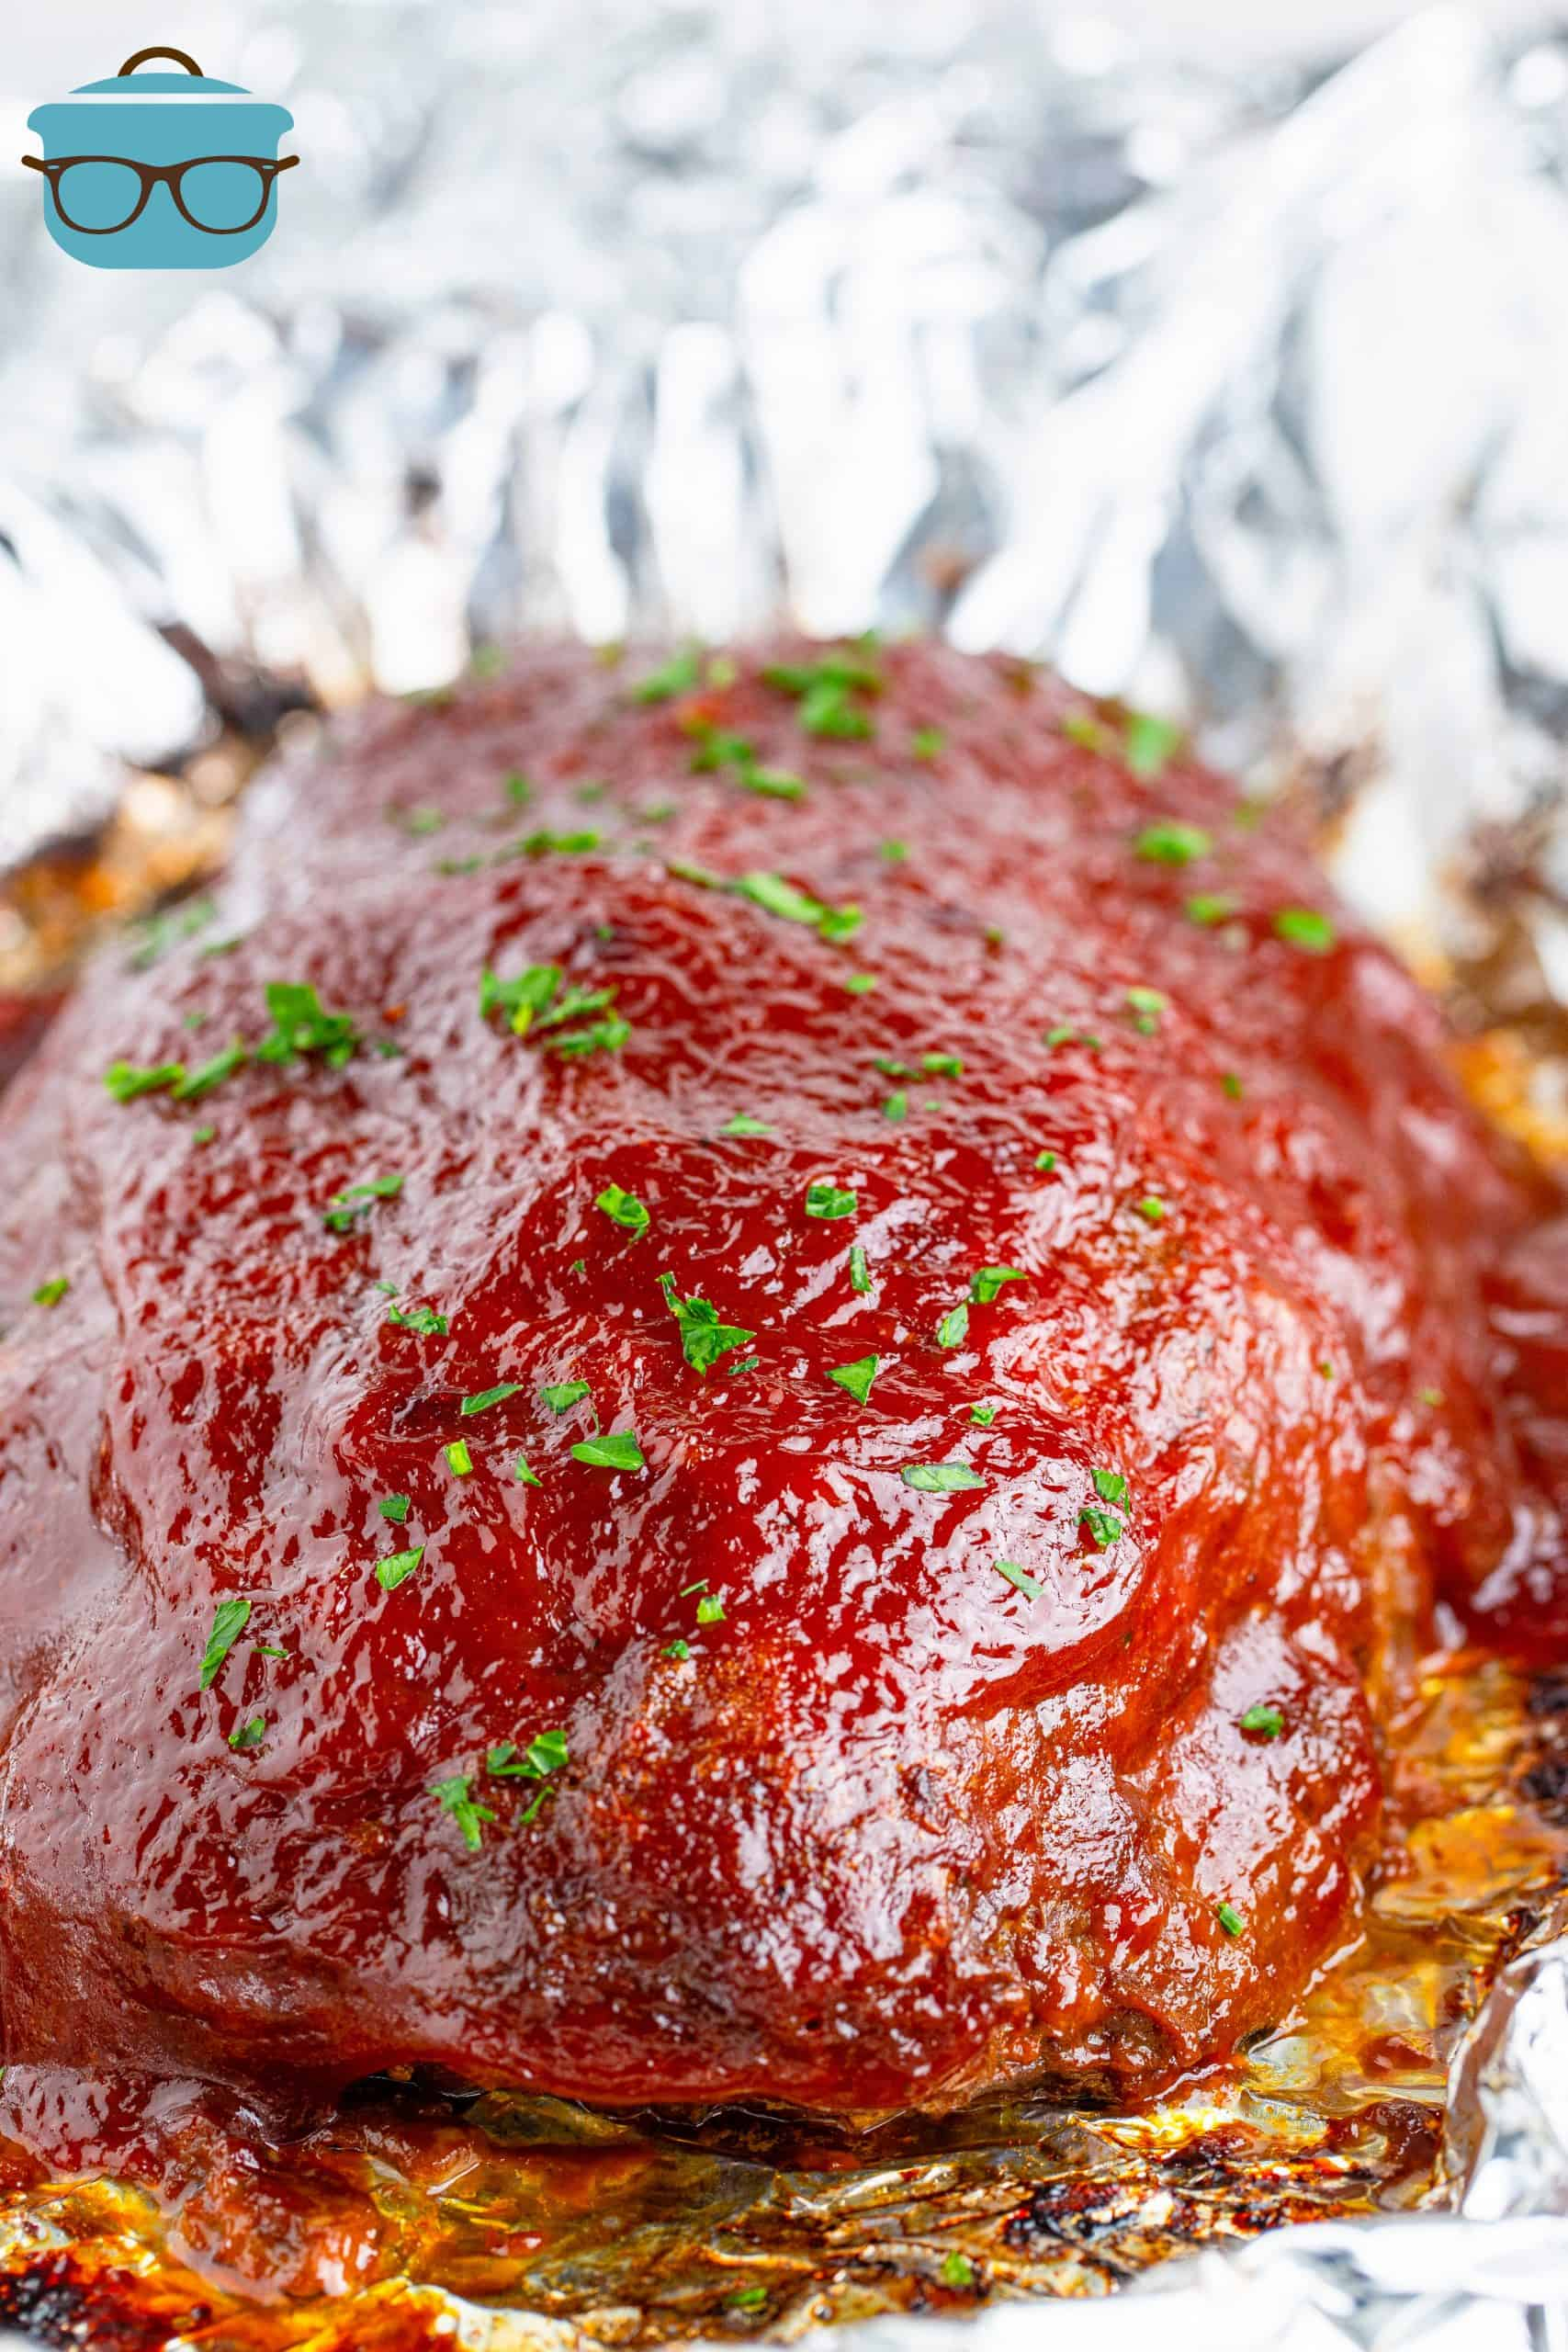 Finished meatloaf on foil topped with parsley